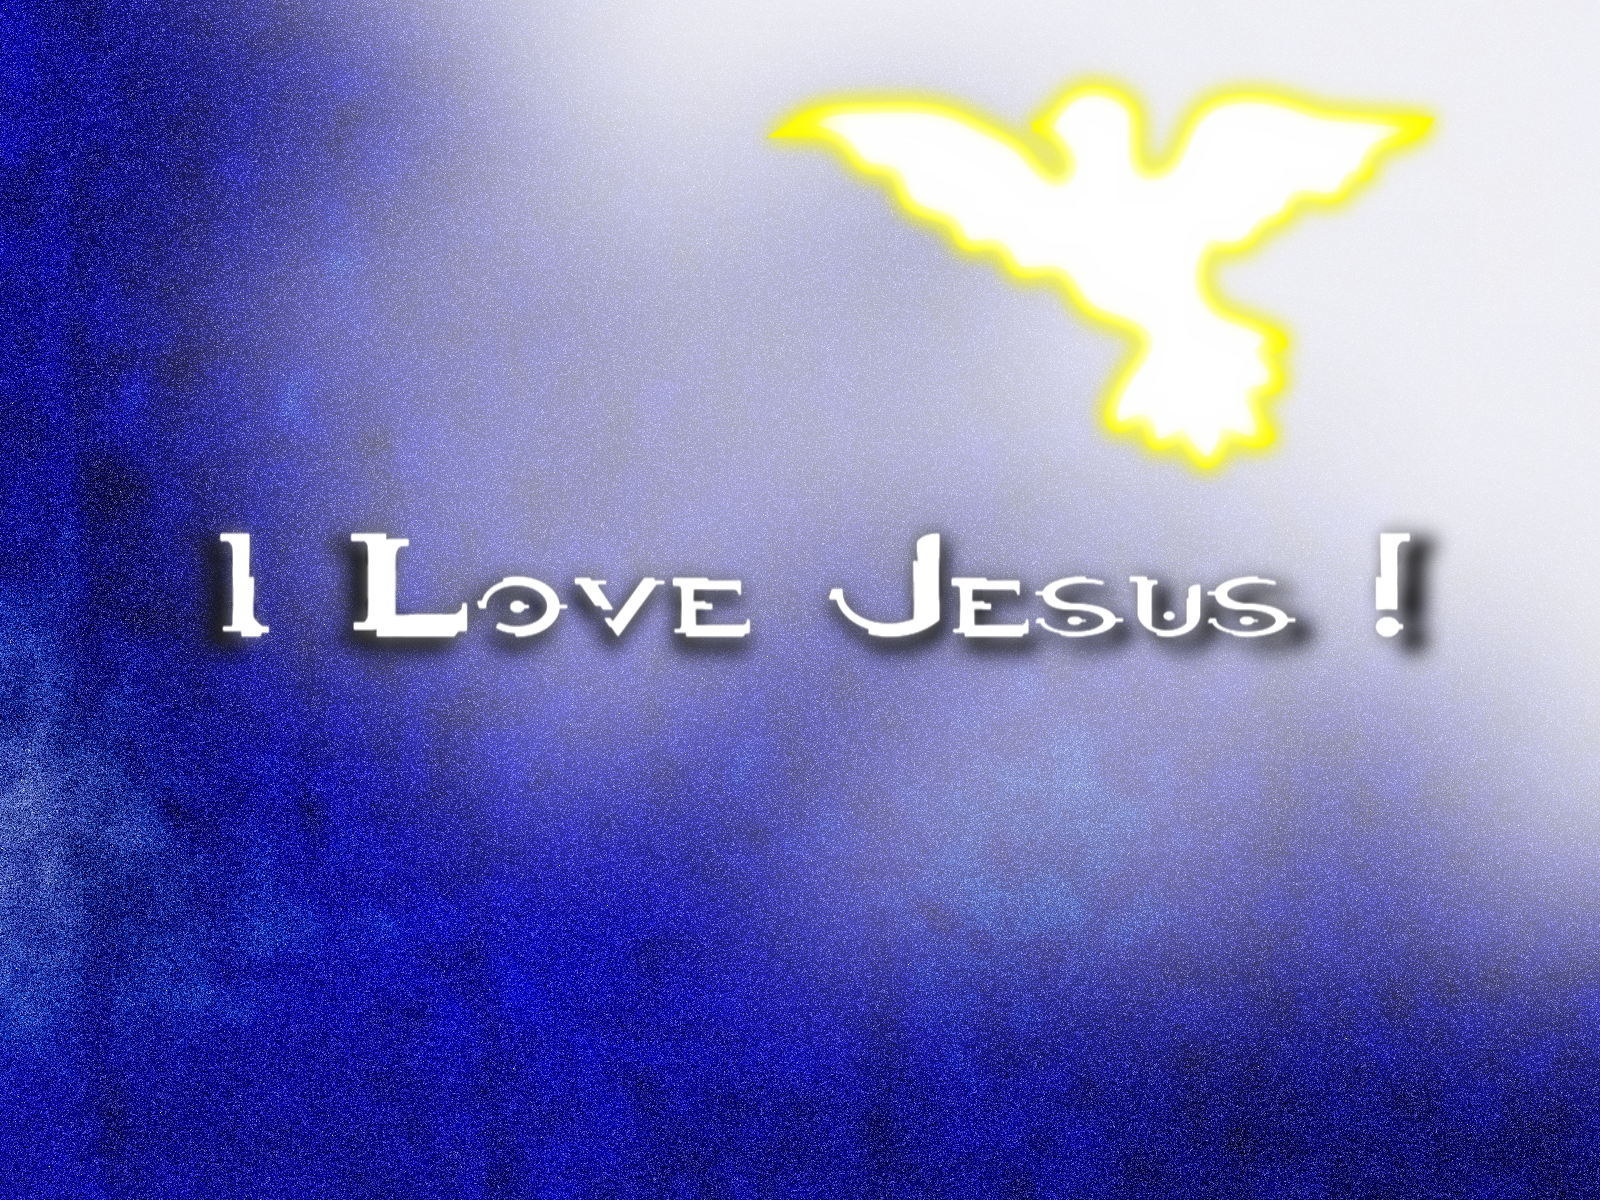 Jesus Love Wallpaper Hd : i love hd wallpaper: I Love Jesus Wallpaper